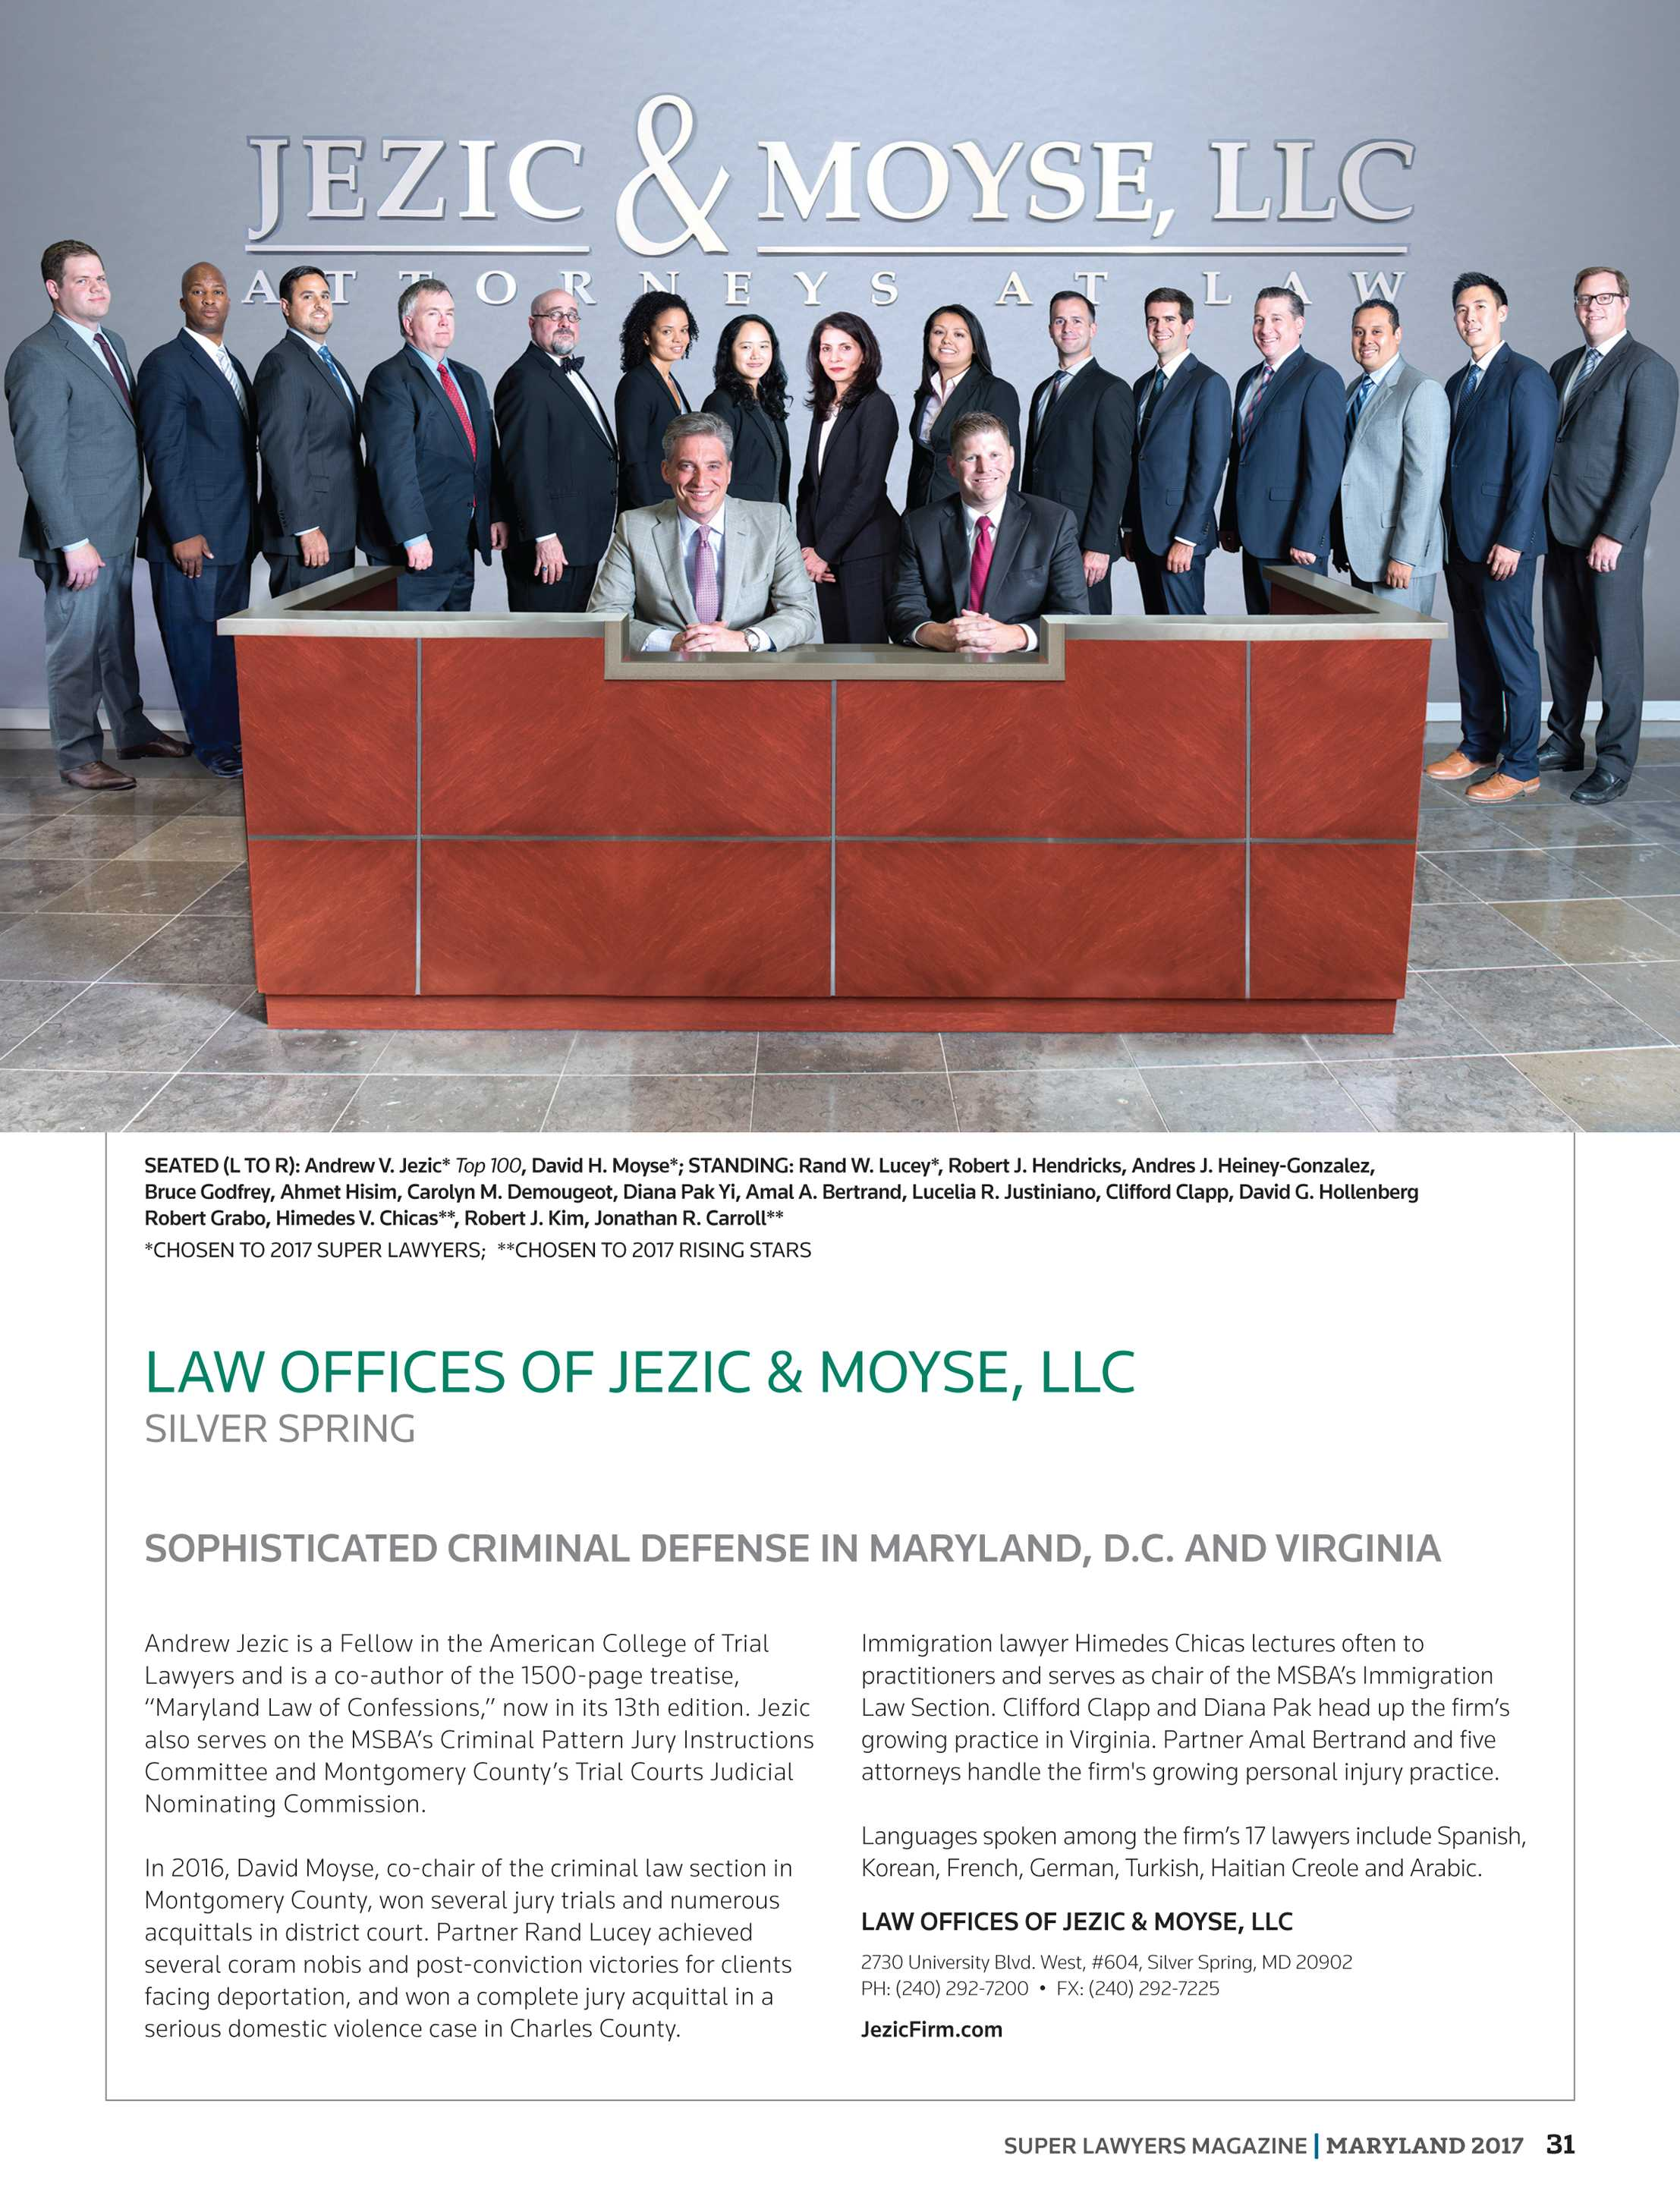 Super Lawyers Maryland 2017 Page 31